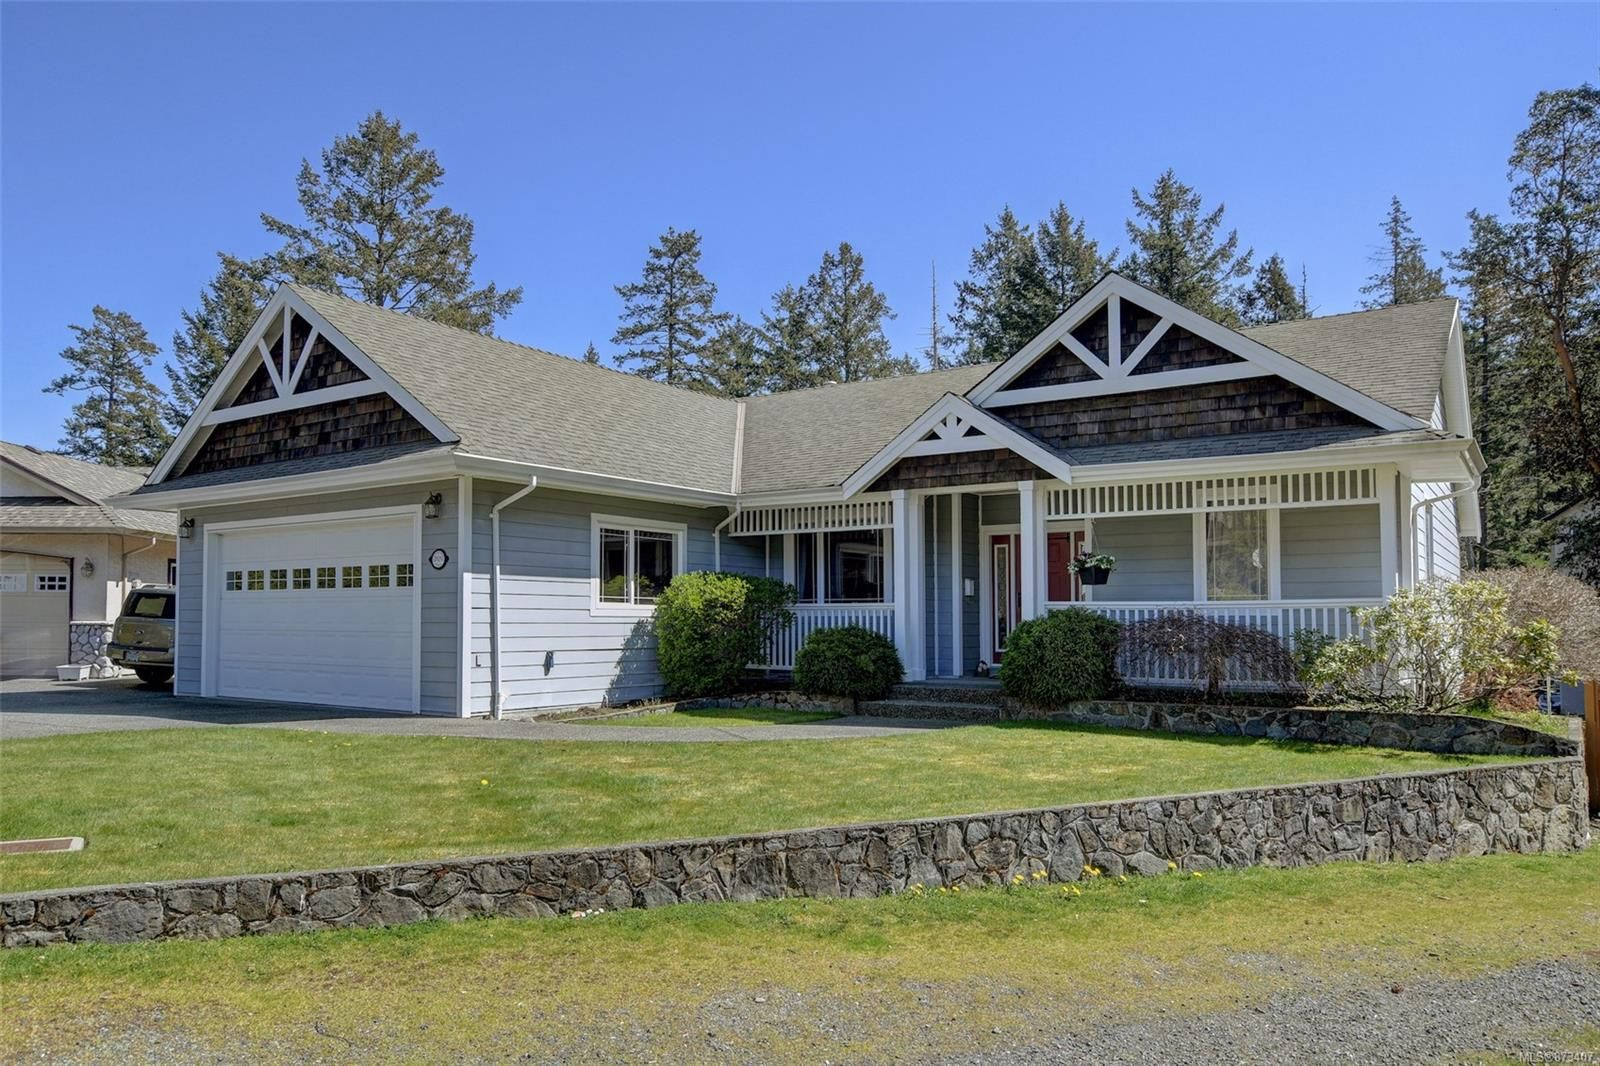 Main Photo: 2029 Haley Rae Pl in : La Thetis Heights House for sale (Langford)  : MLS®# 873407